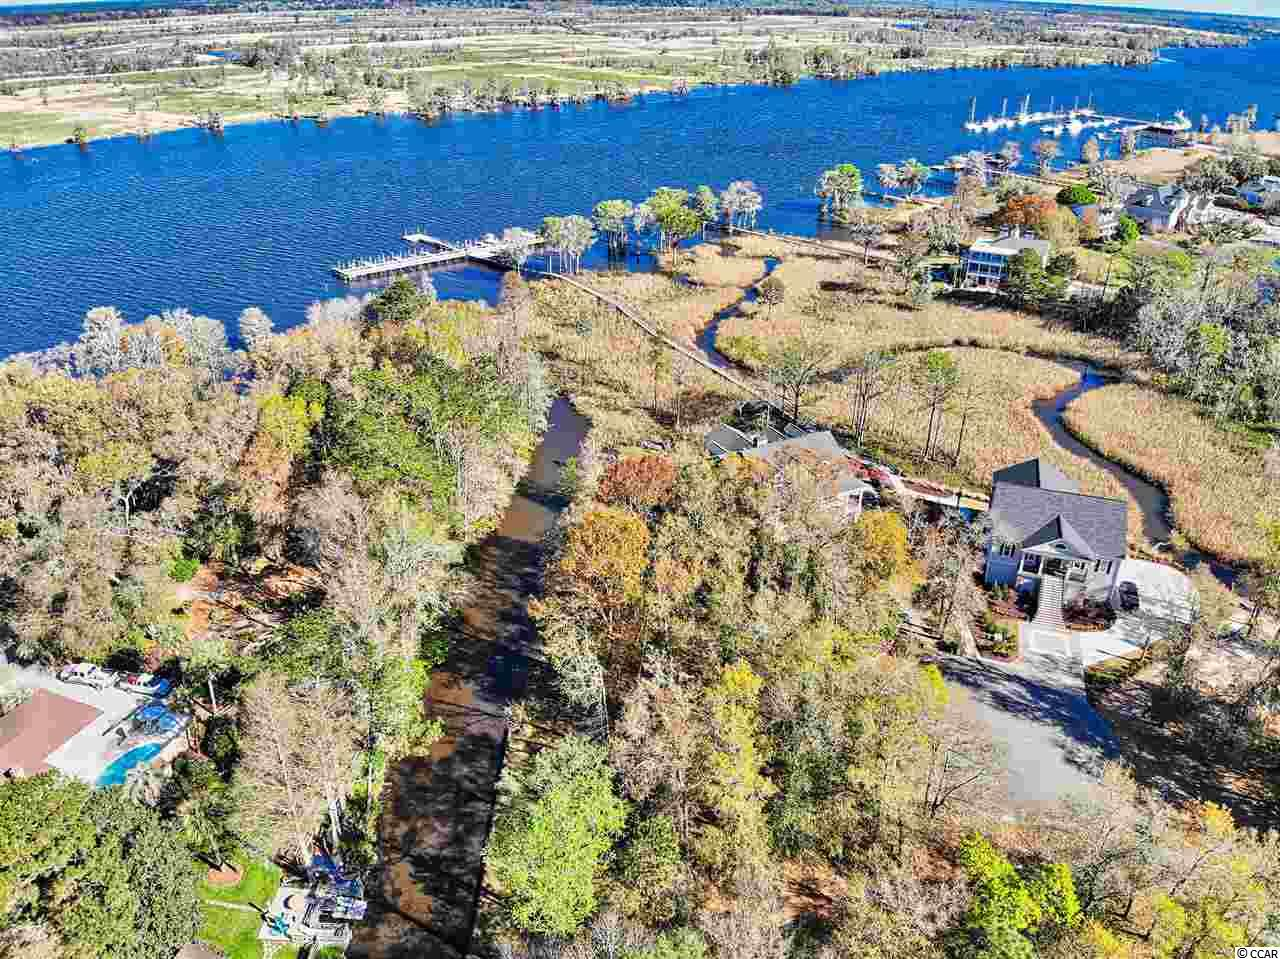 Build your dream house on this beautiful waterfront lot  in the Rivergate subdivision of Pawleys Island.  This lot with bulk head is situated on a tidal canal leading to the Intracoastal Waterway/Waccamaw River.  This community is a quiet cul-de-sac neighborhood with a total of 14 lots located on the waterway between Hagley and Heritage Plantation.   Rivergate owners also enjoy a common dock on the Intracoastal Waterway.  A DEEDED BOAT SLIP CONVEYS WITH PURCHASE!  Owners have the right to put in their own private boat lift.  Jump on your boat for an evening sunset cruise  or for a weekend trip on the Intracoastal to Myrtle Beach or Charleston, SC.  Pawleys Island beaches are just minutes away.  Close to fine dining, boutique shopping and more.  Pawleys Island is just a 65 mile drive to historic Charleston, SC or a 30 mile drive to Myrtle Beach!